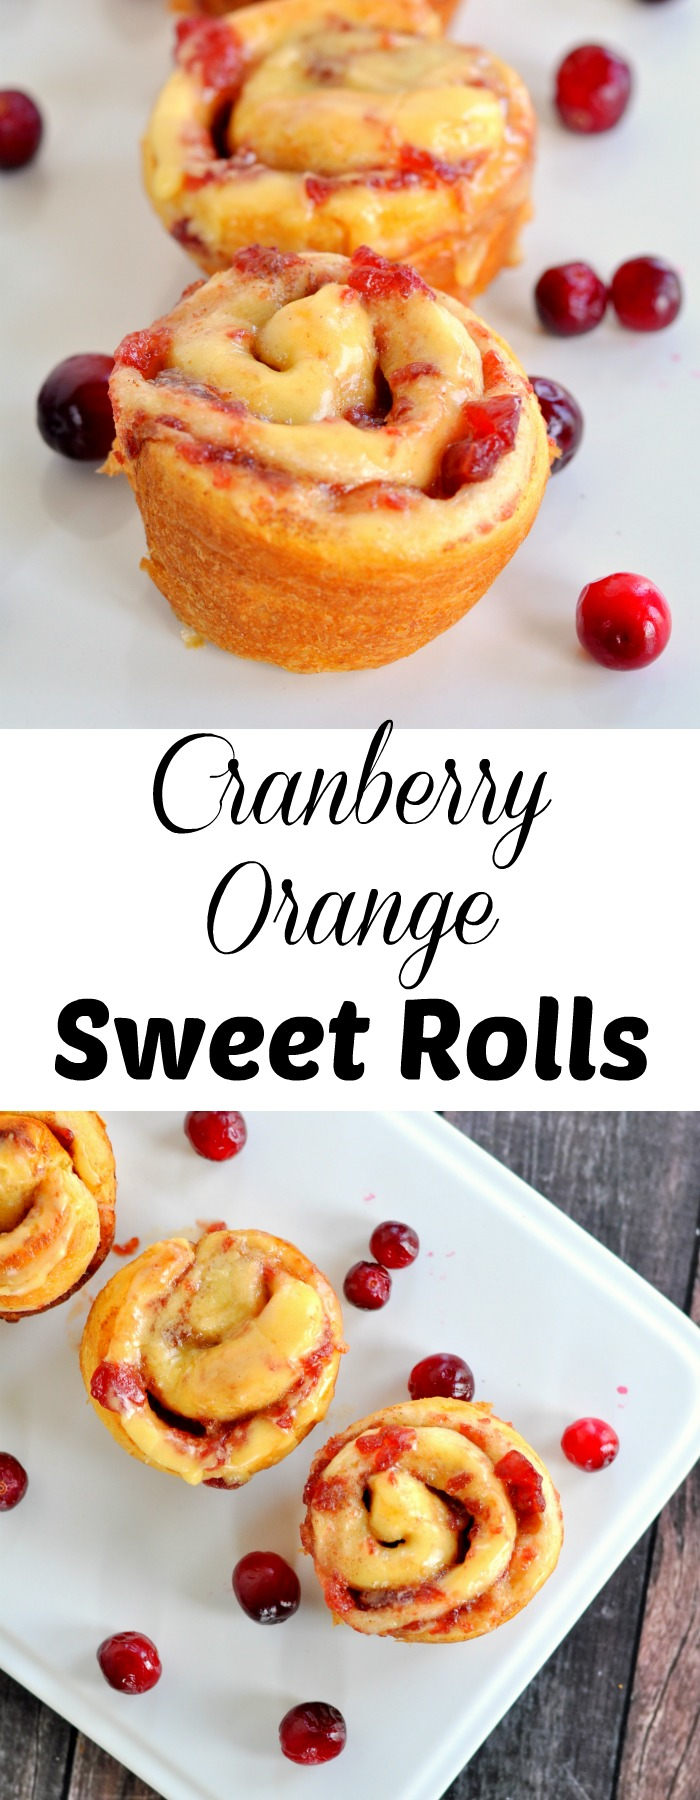 Cranberry orange sweet rolls are the perfect breakfast treat.